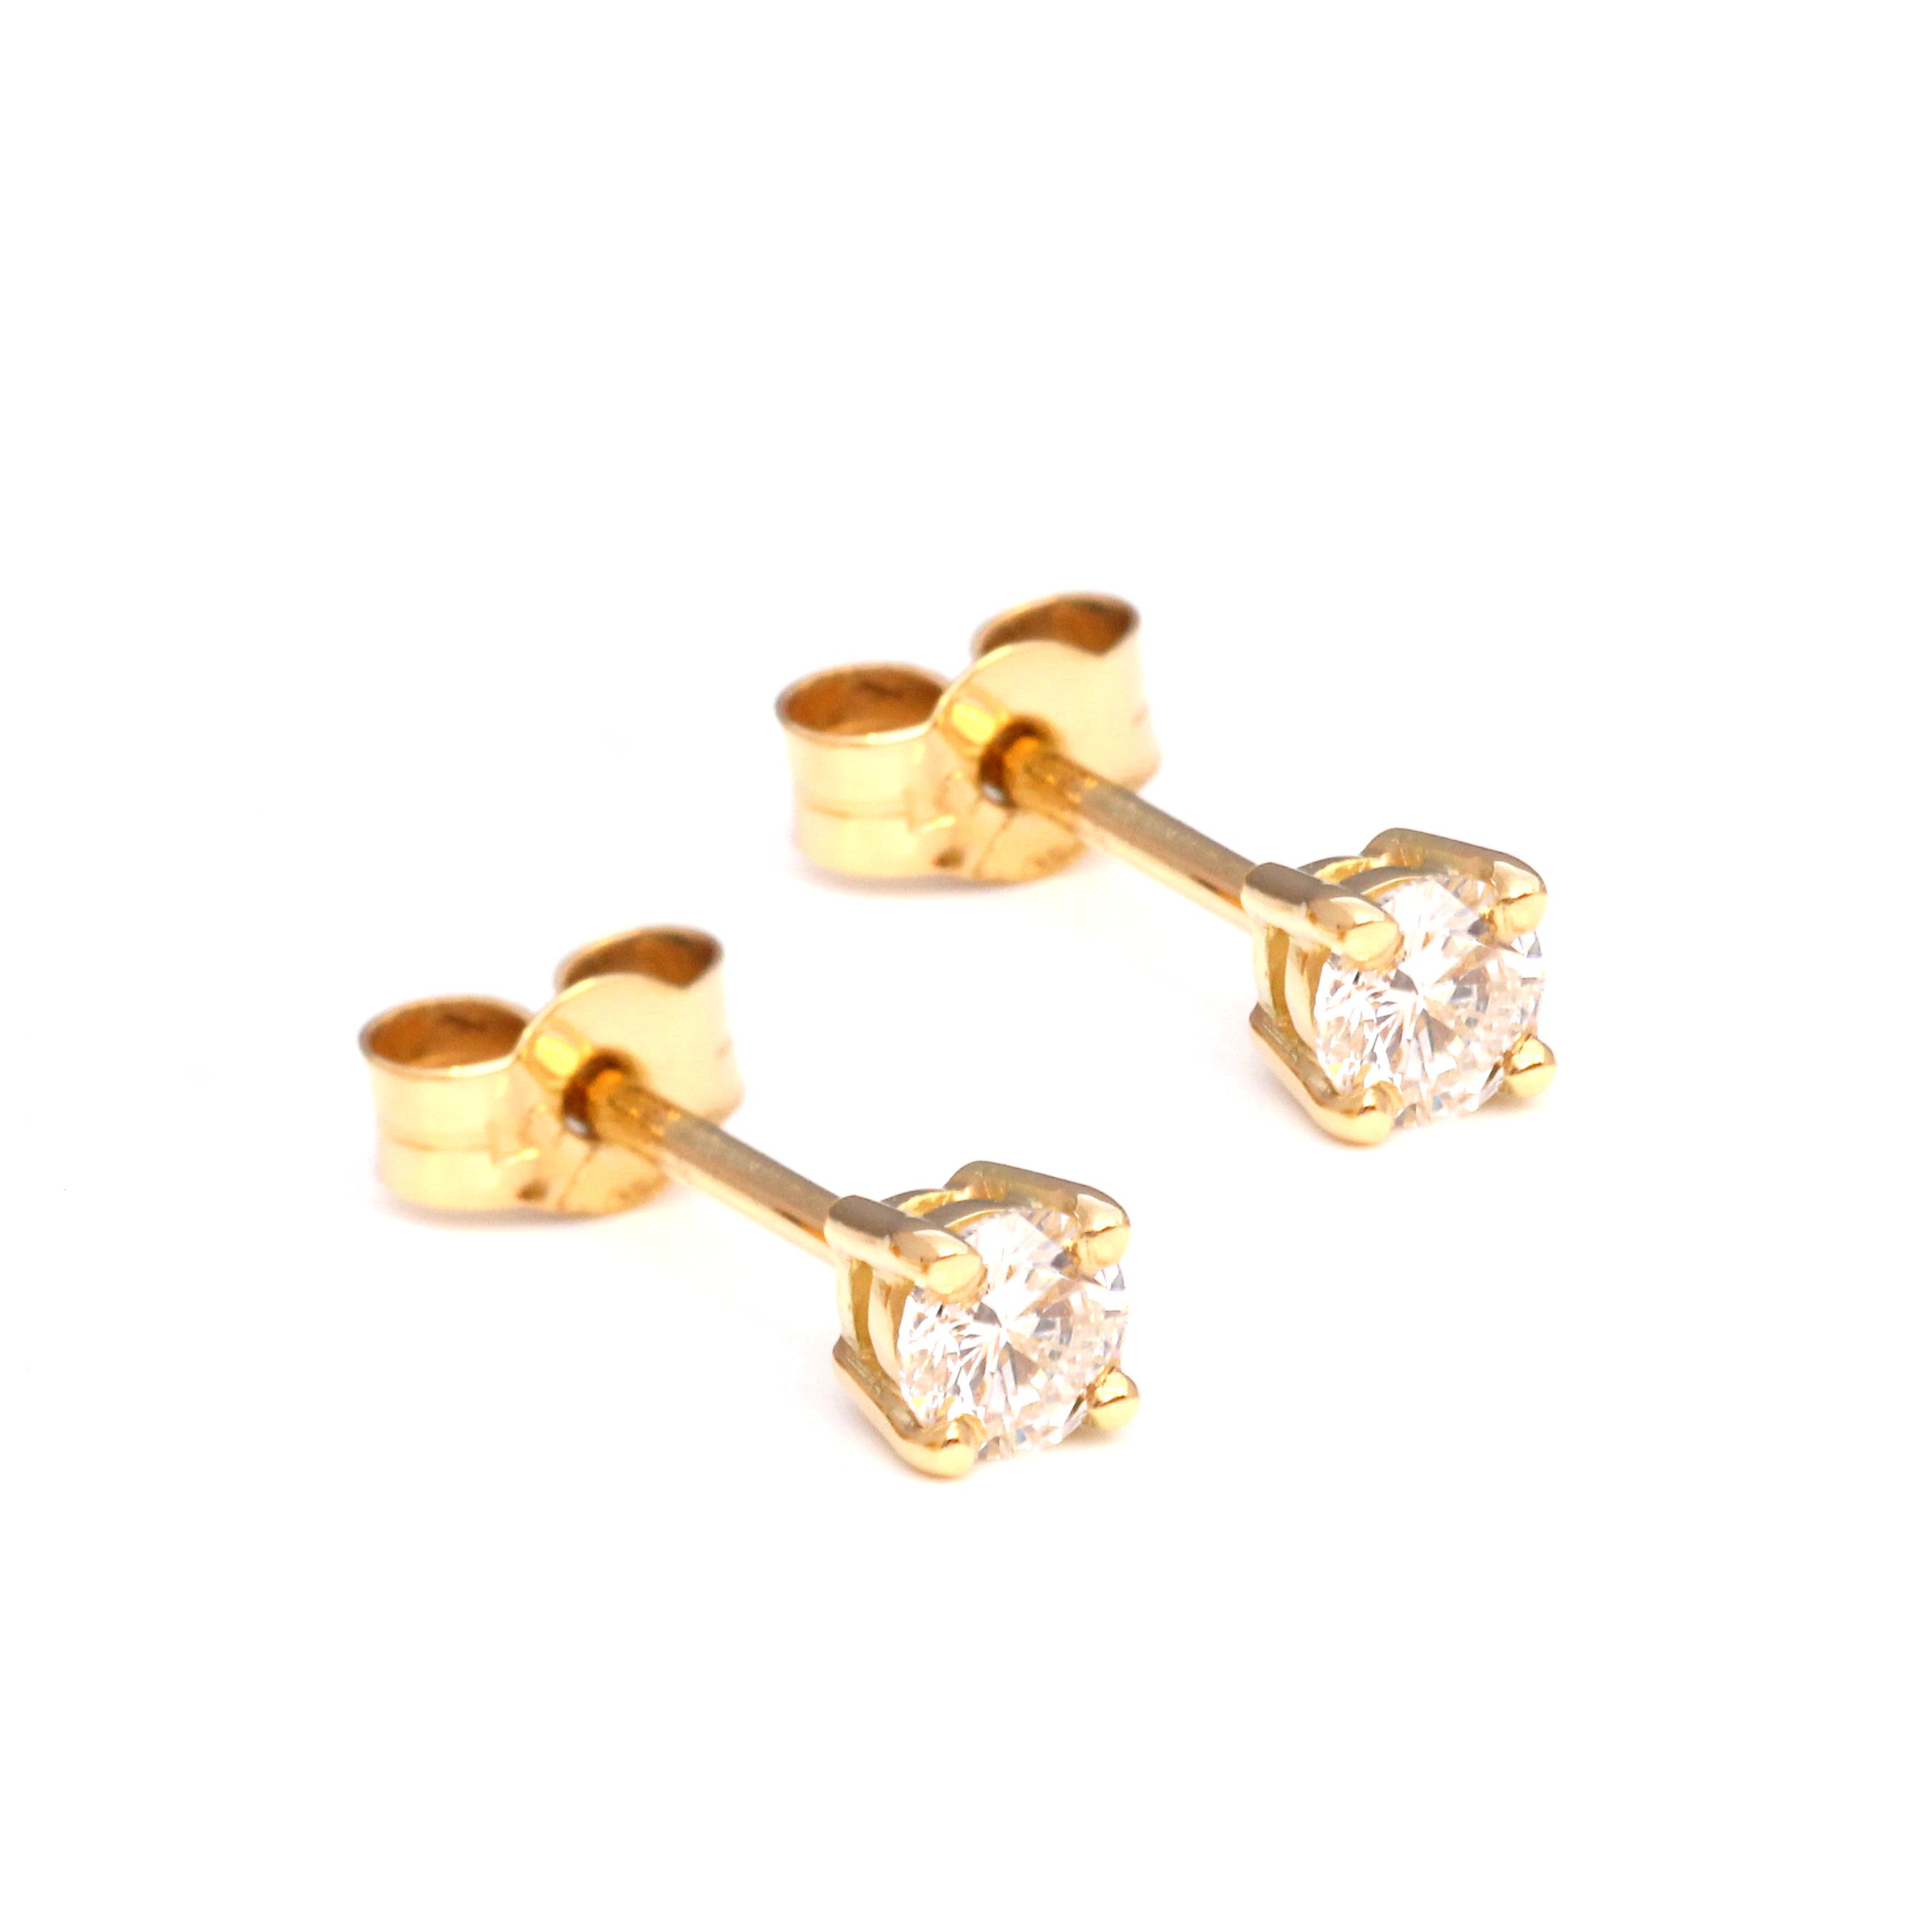 gallery diamond earrings brilliantcut ruboverset aurora cut jewellery brilliant rub over with stud set